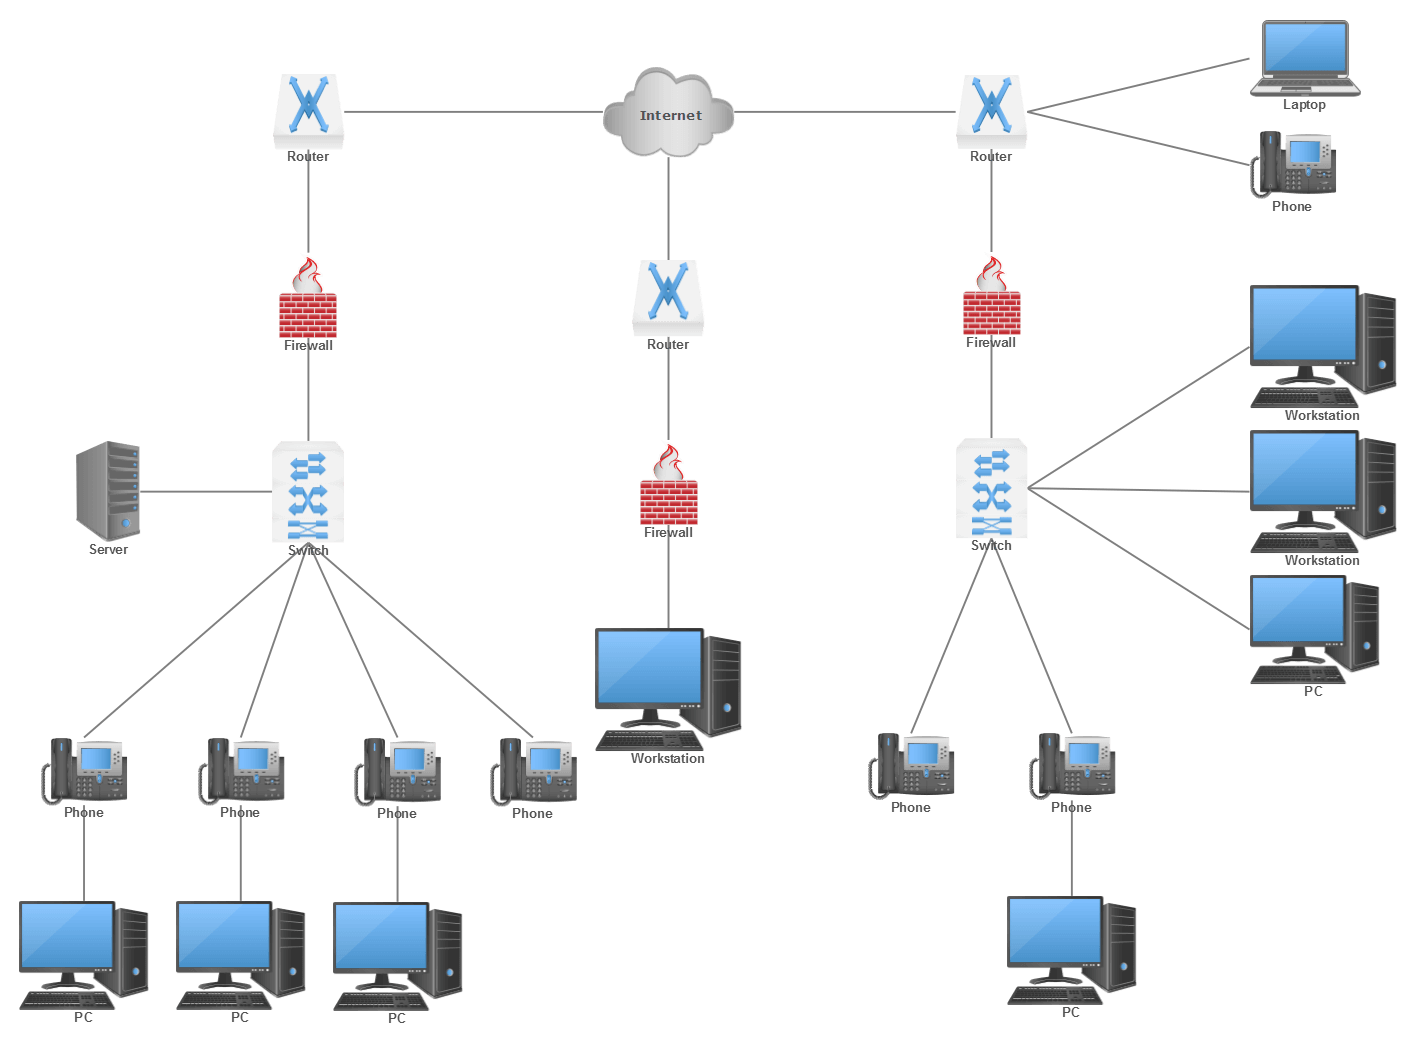 Network drawing